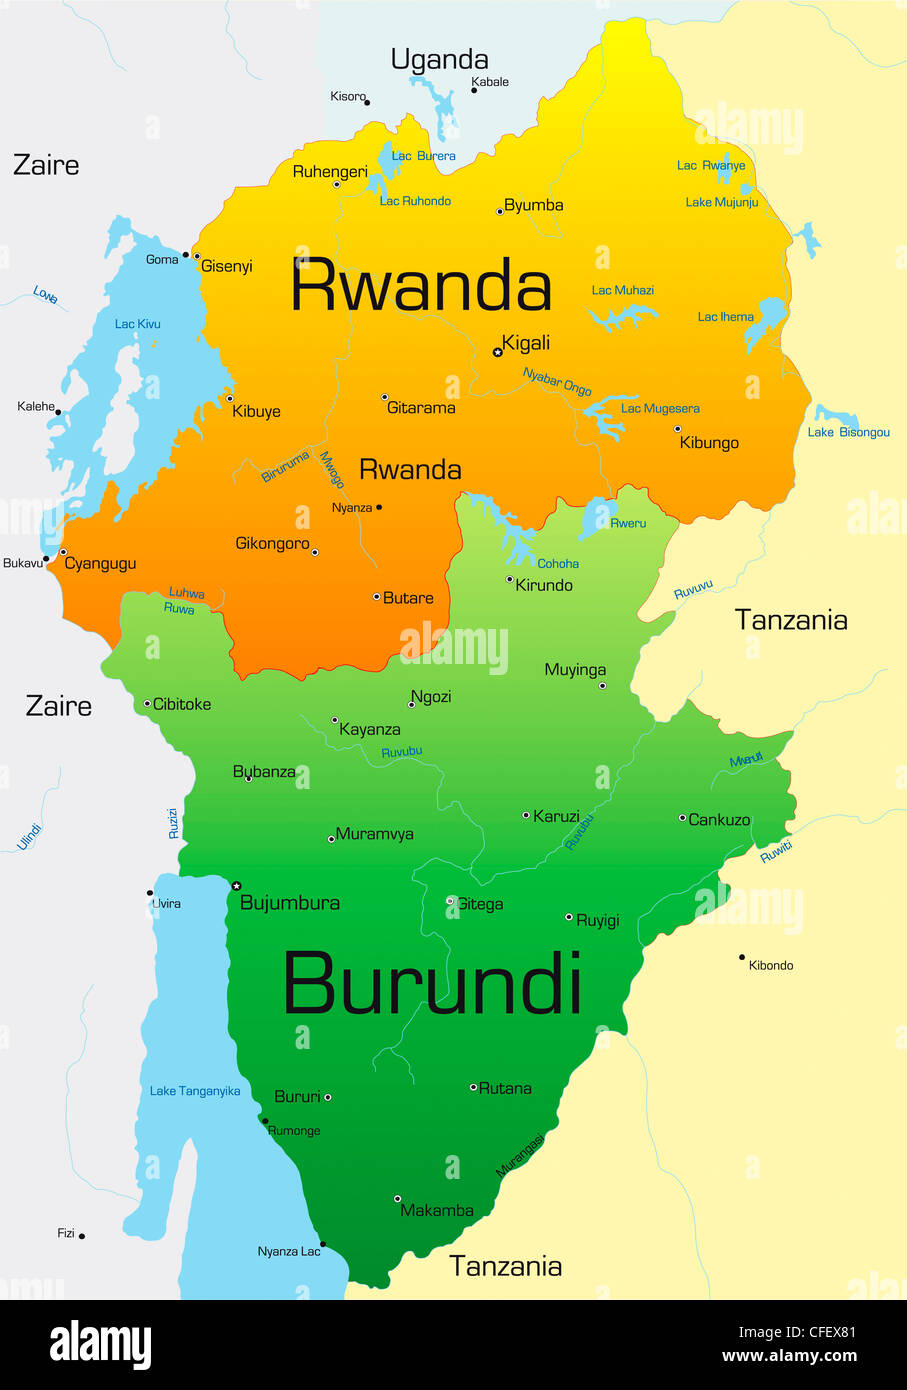 Image of: Abstract Vector Color Map Of Rwanda And Burundi Country Stock Photo Alamy